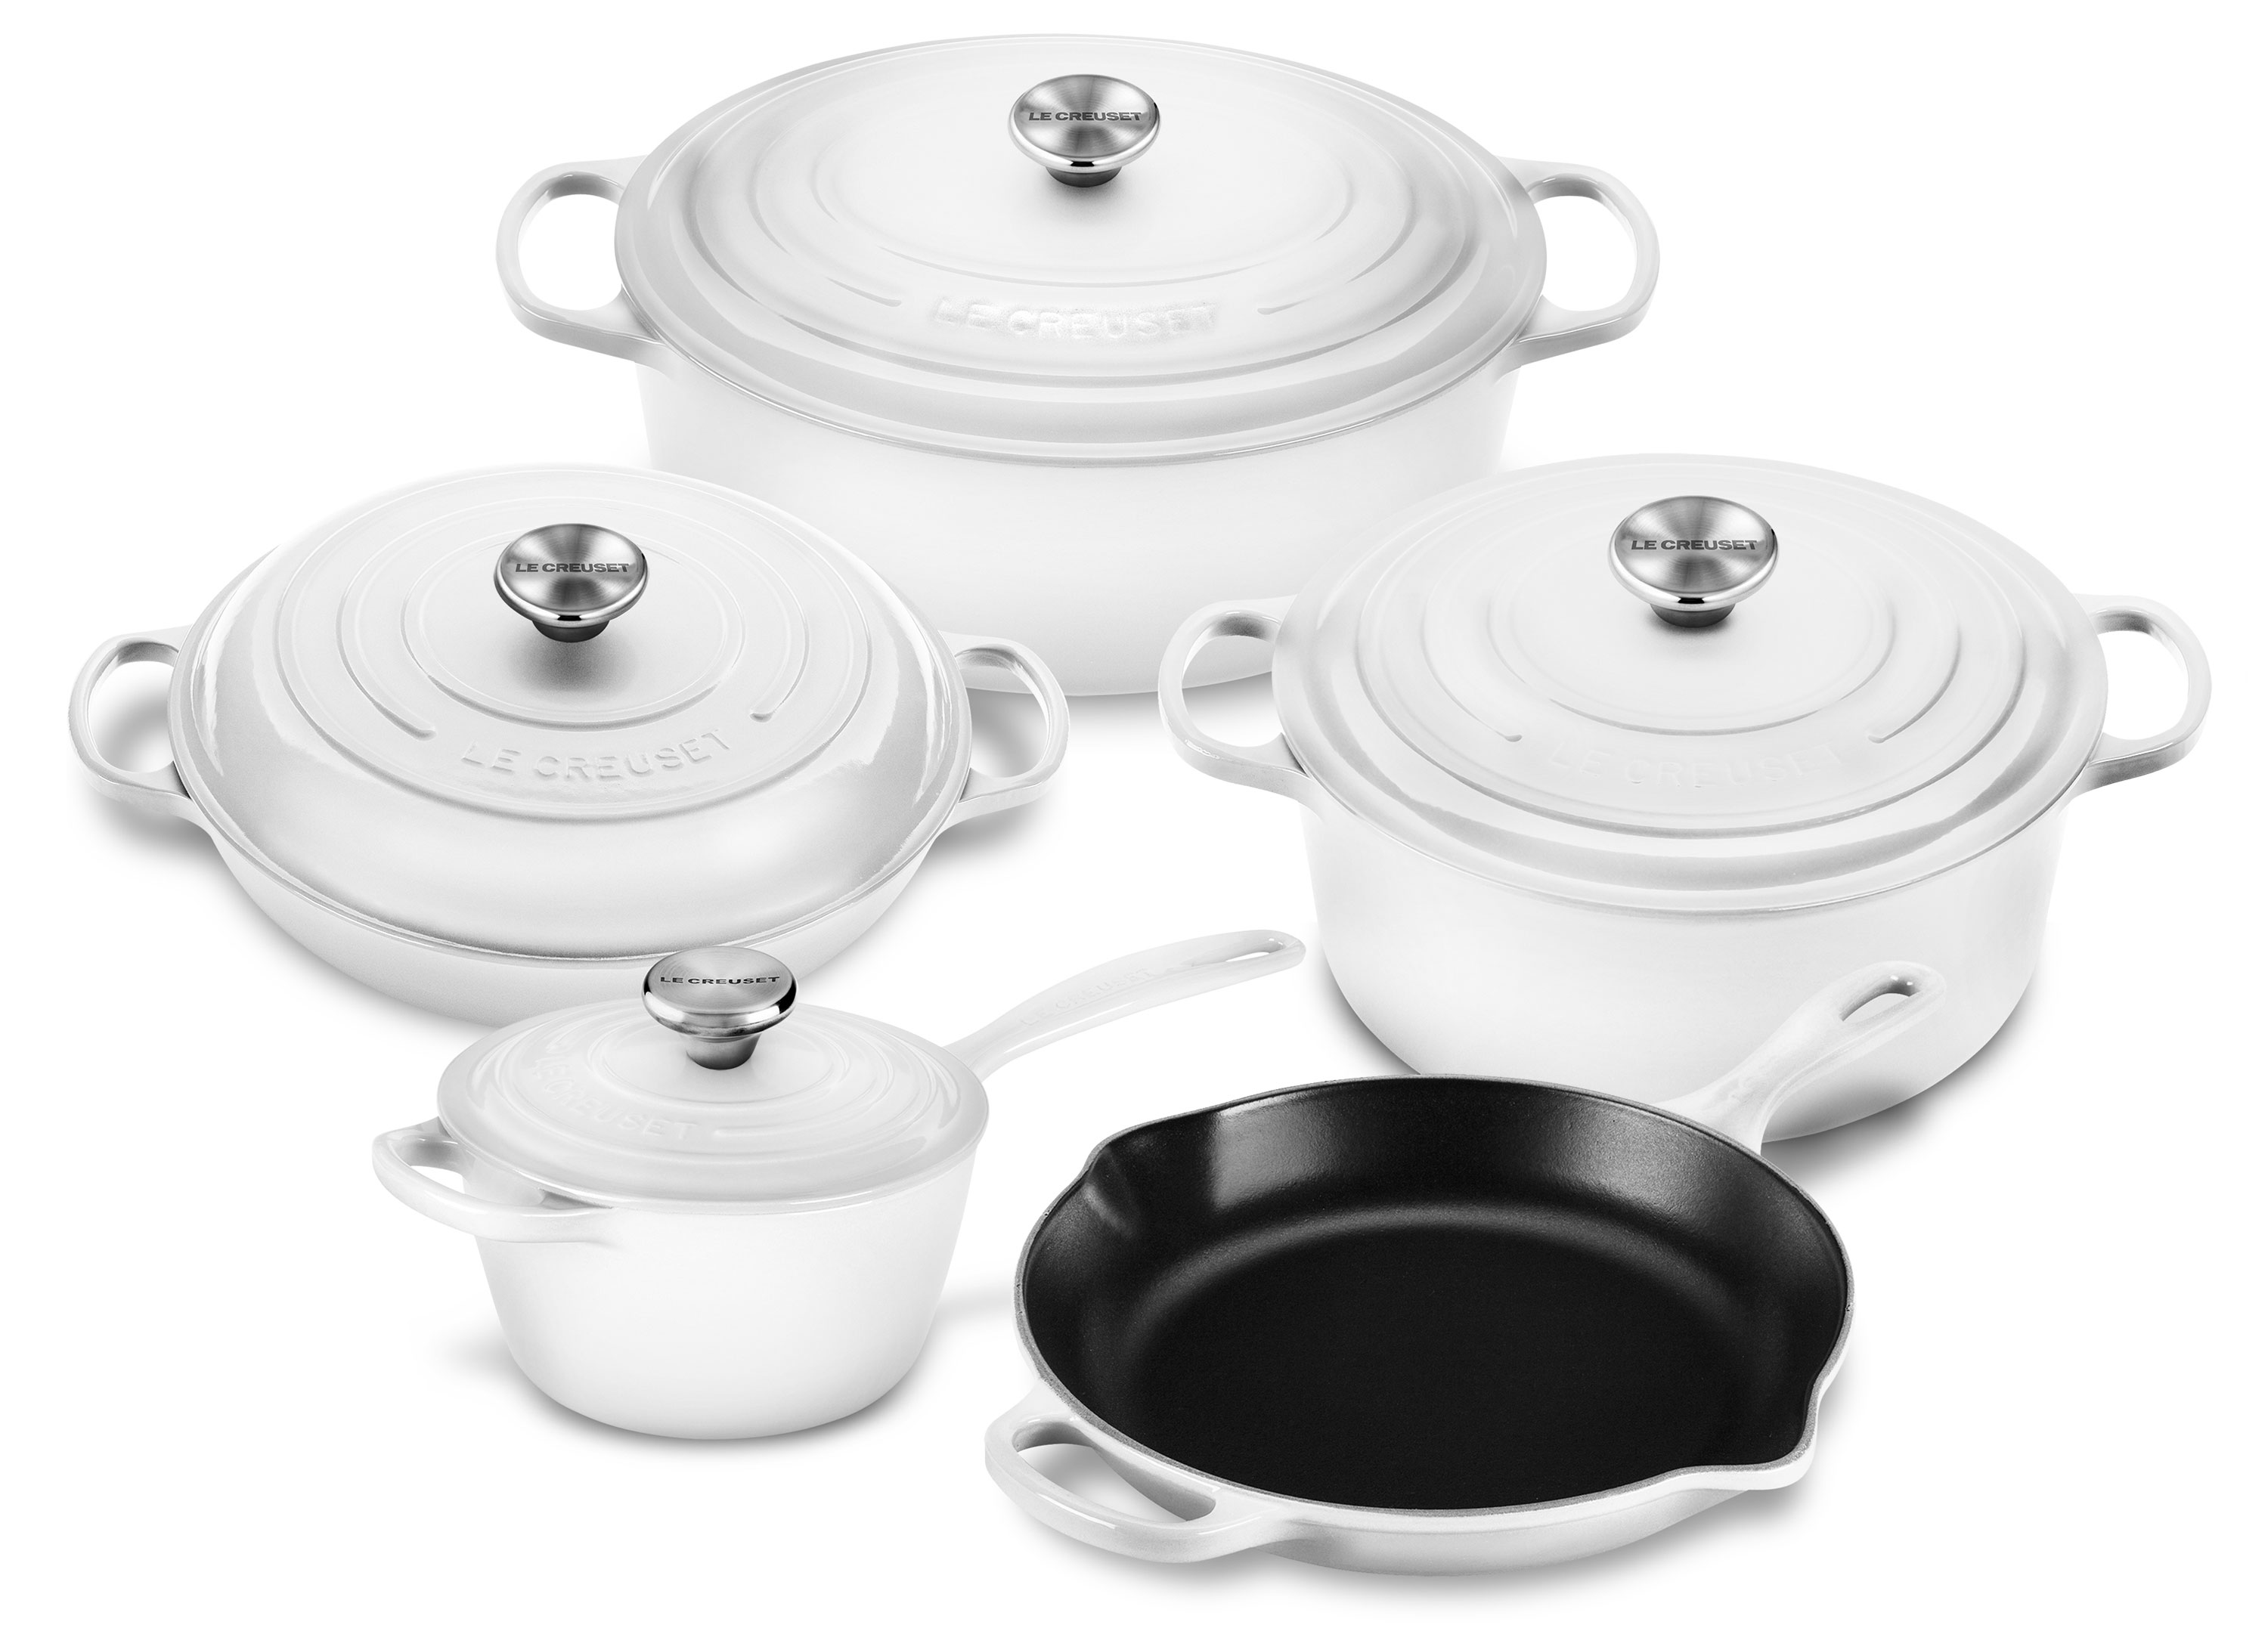 le creuset cookware set 9 piece signature cast iron white cutlery and more. Black Bedroom Furniture Sets. Home Design Ideas